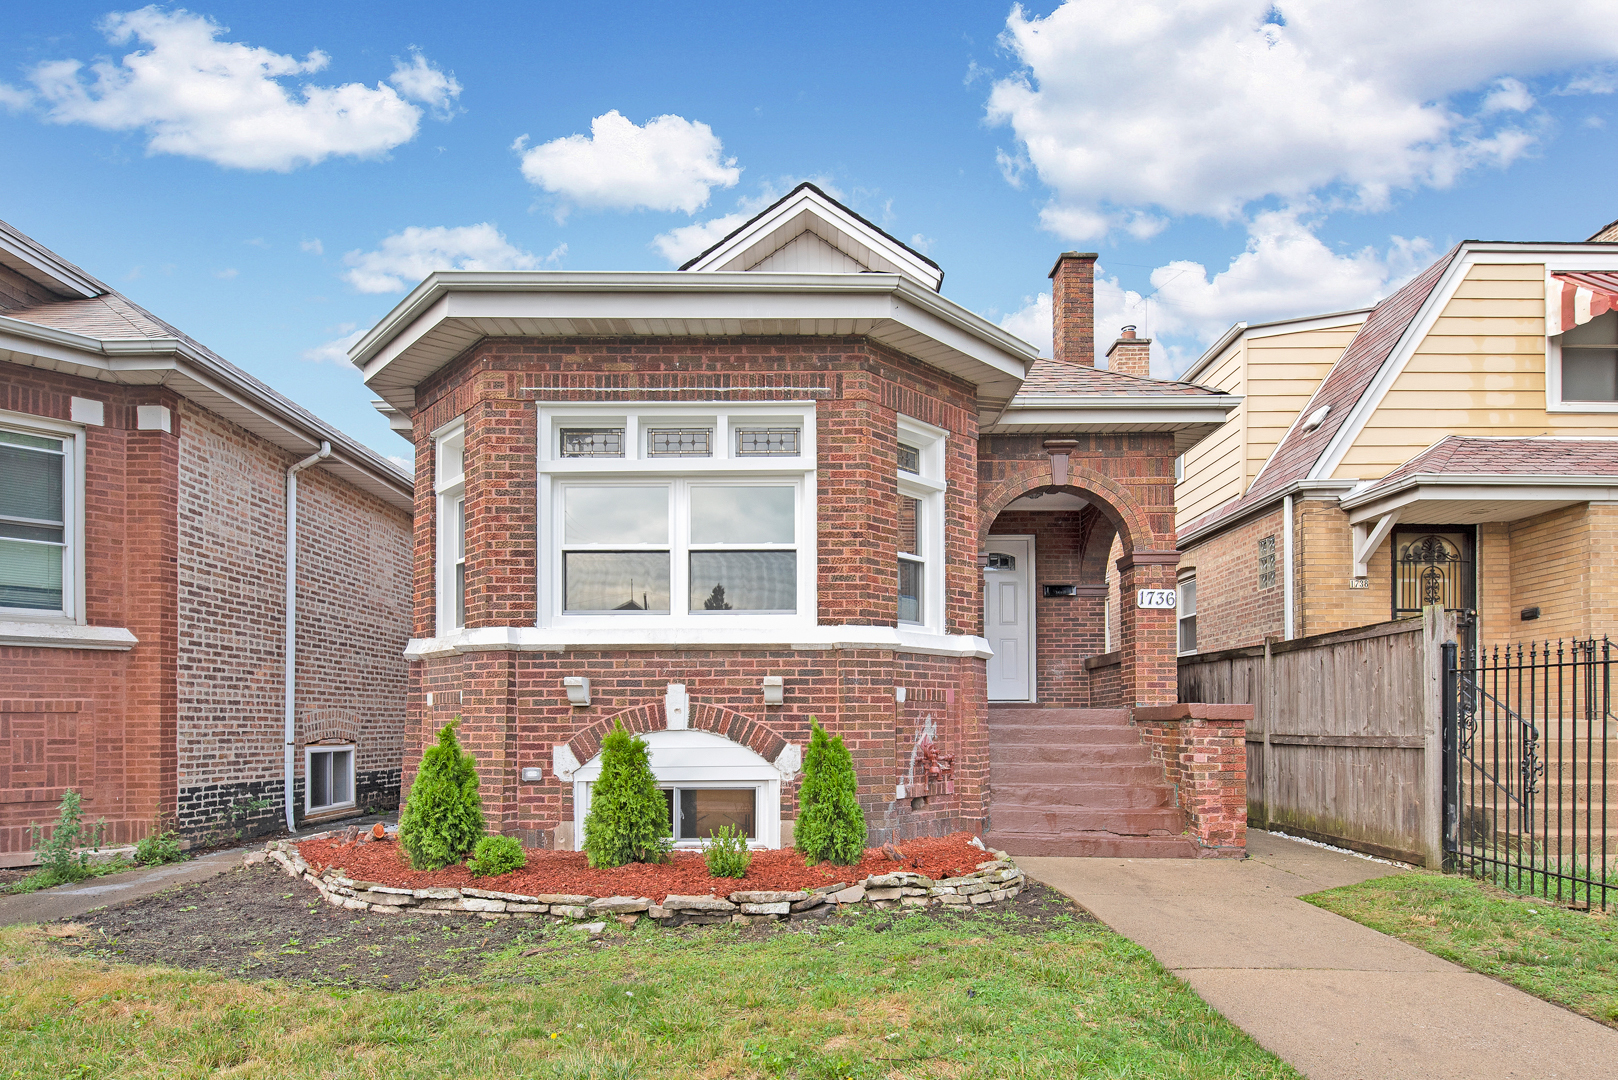 1736 EAST 84TH STREET, CHICAGO, IL 60617